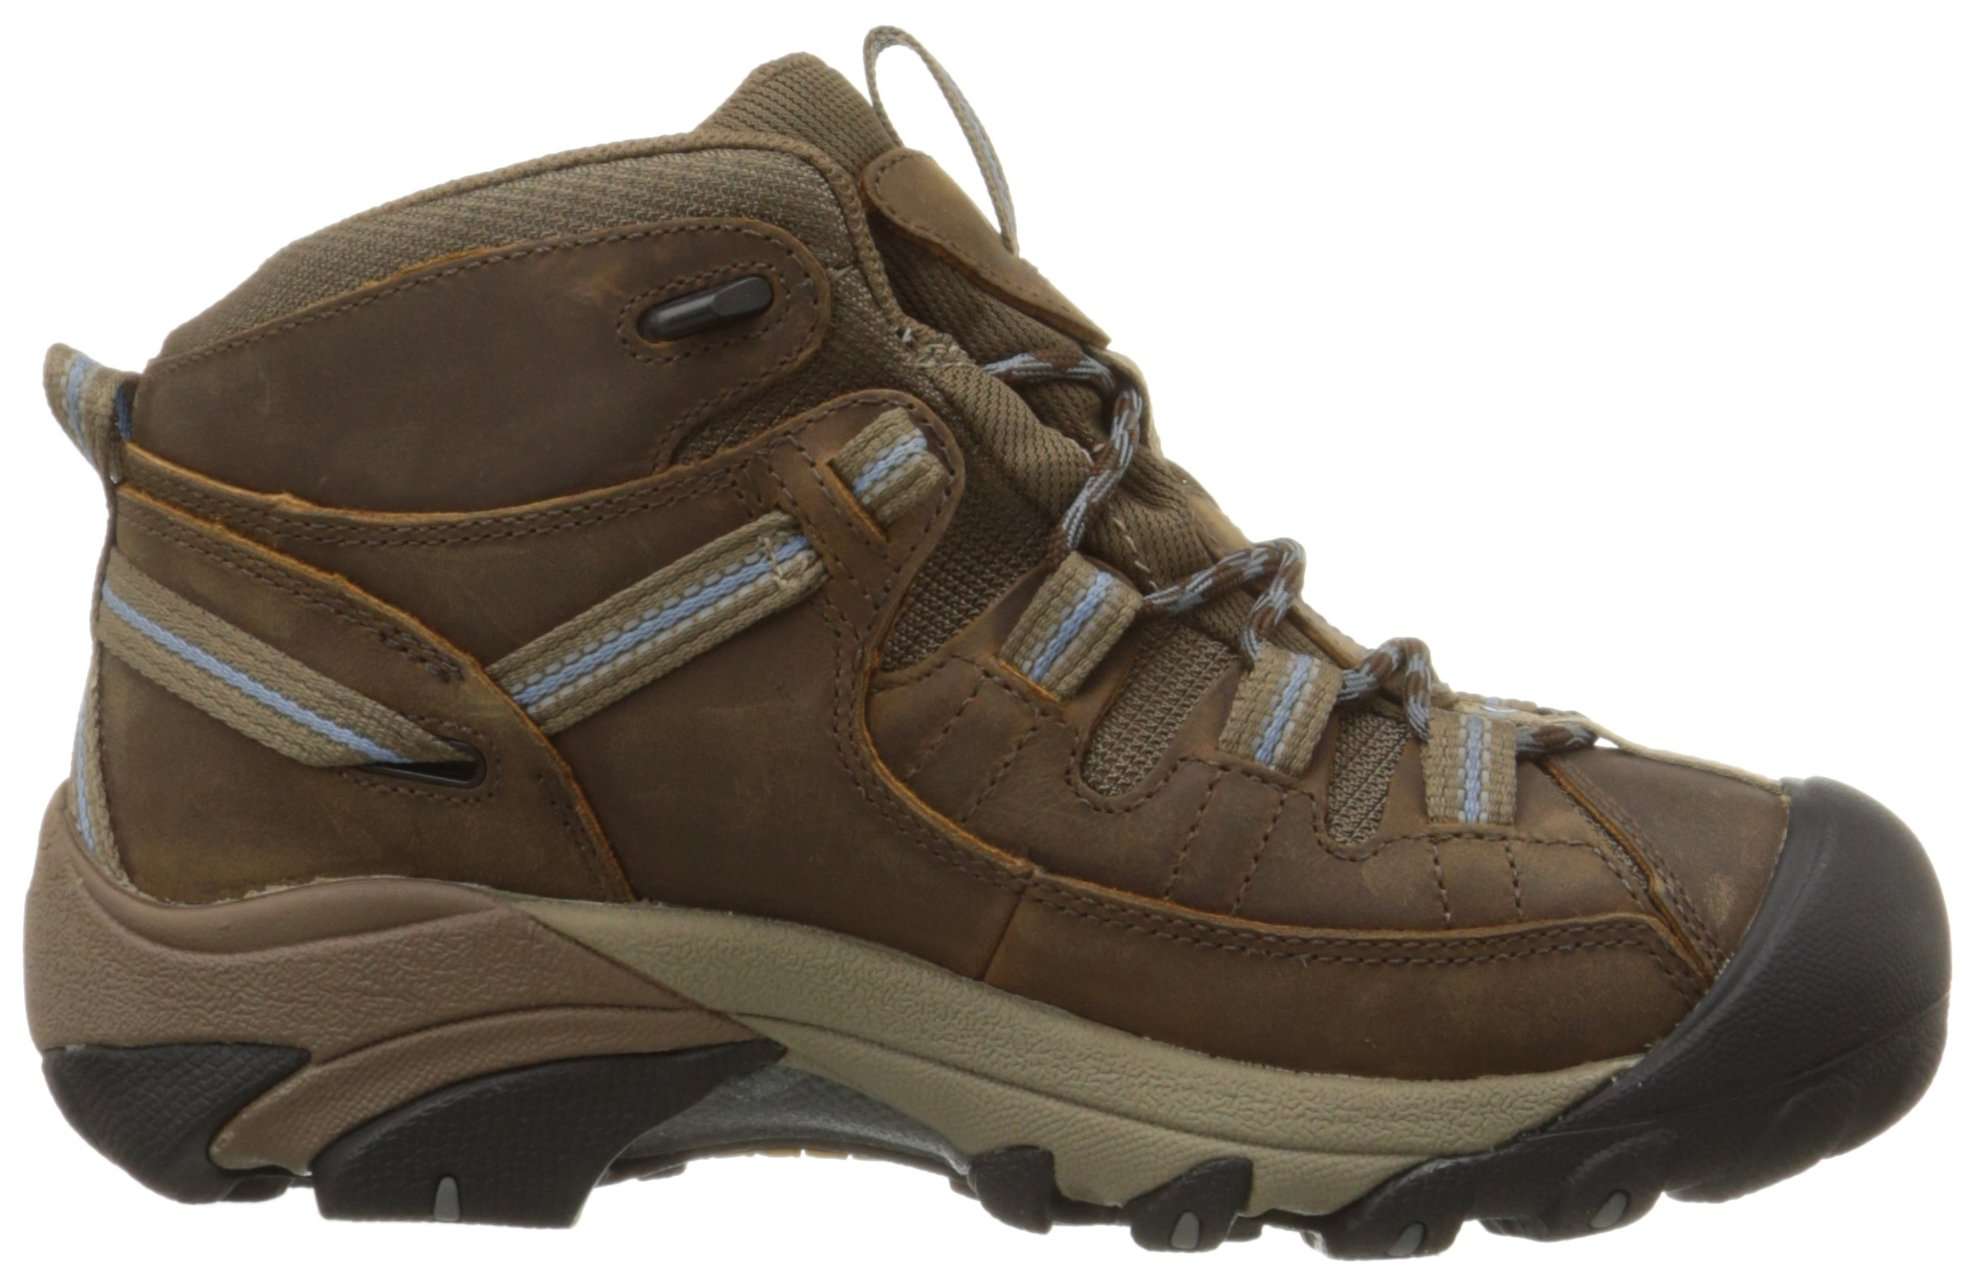 KEEN Women's Targhee II Mid Waterproof Hiking Boot,Slate Black/Flint Stone,8.5 M US by KEEN (Image #7)